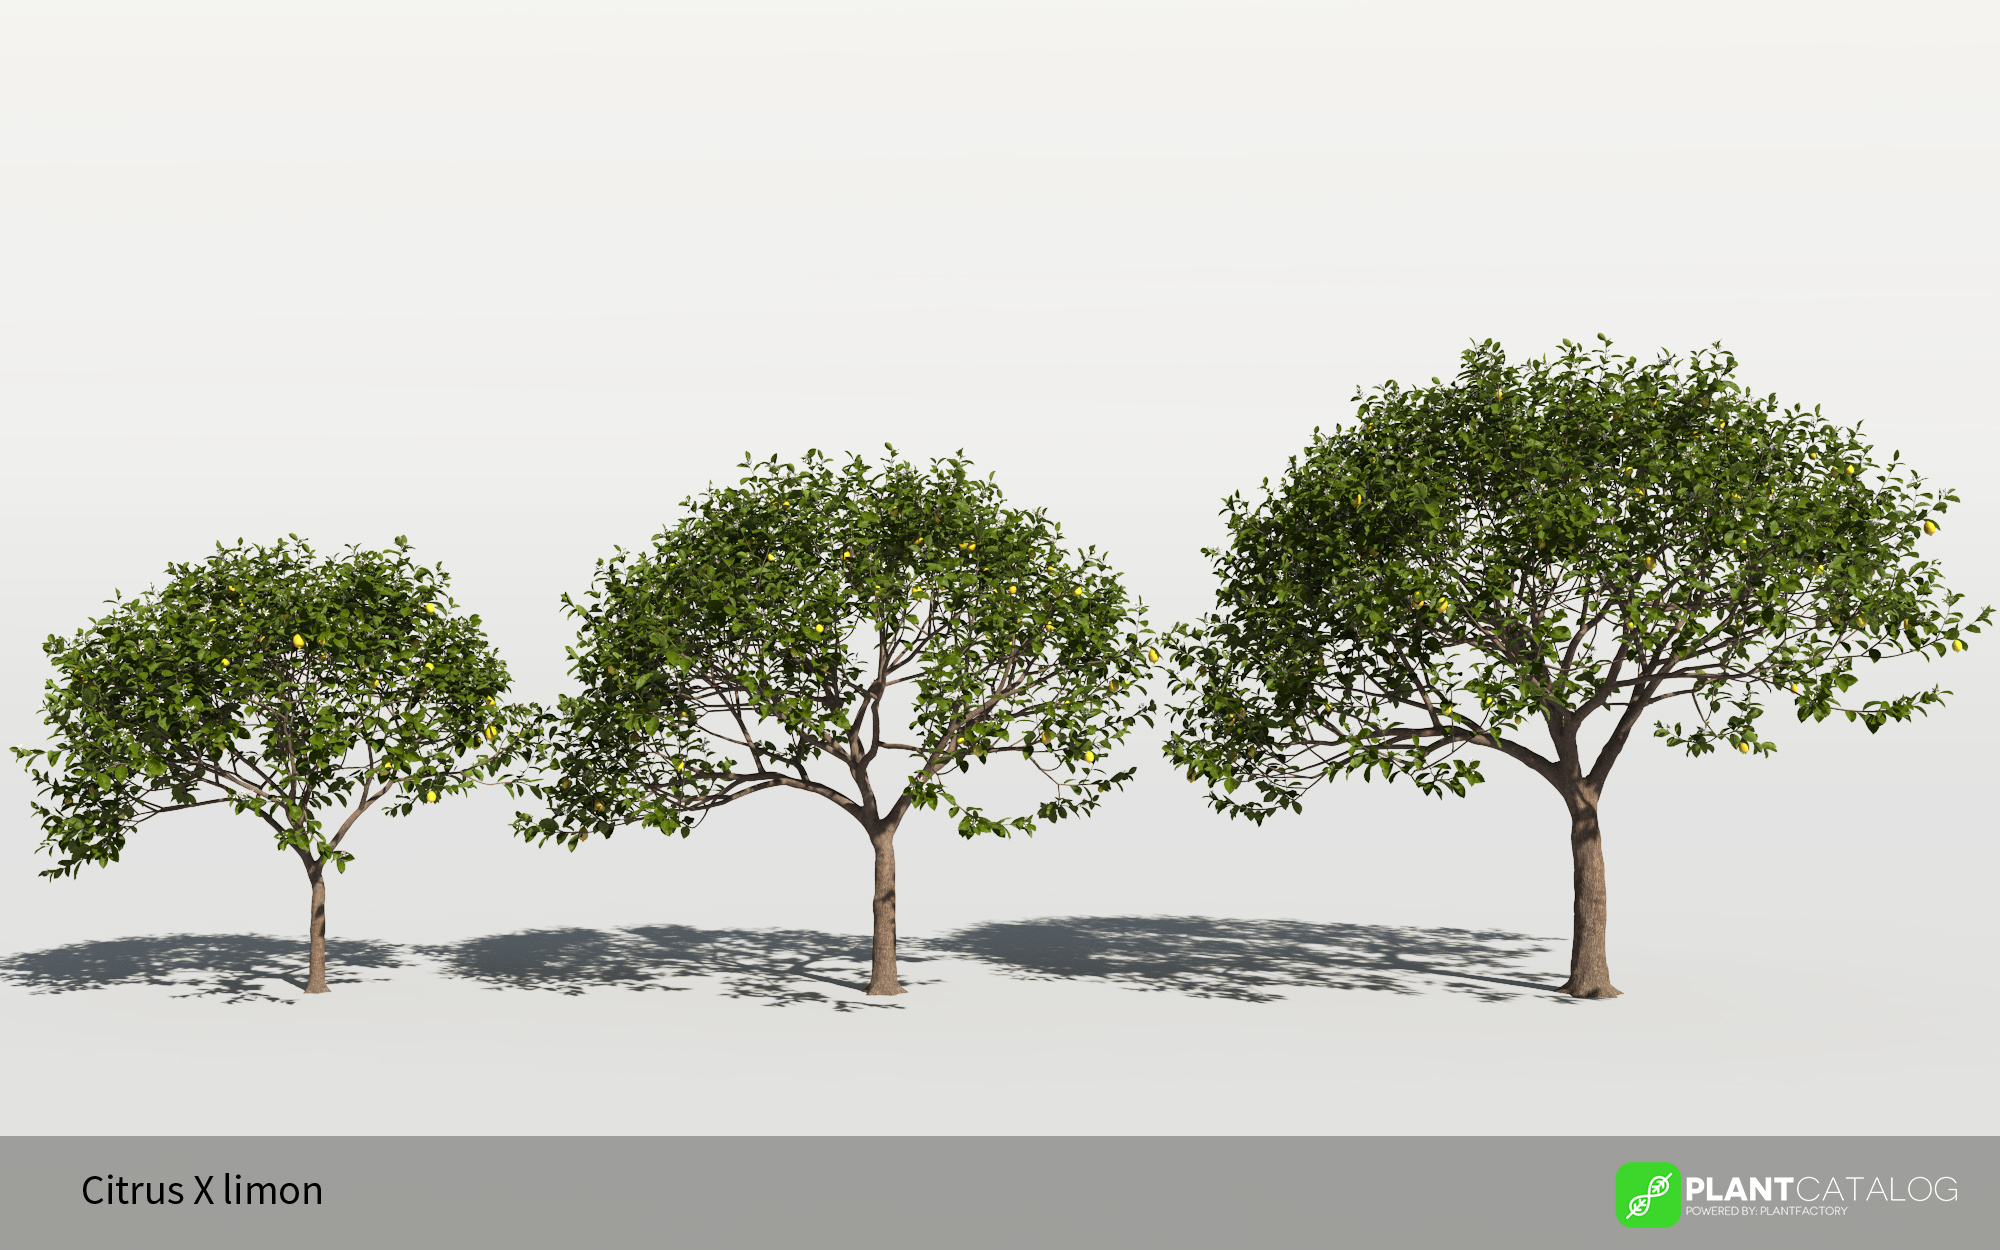 3D model of the Lemon tree - Citrus x limon - from the PlantCatalog, rendered in VUE